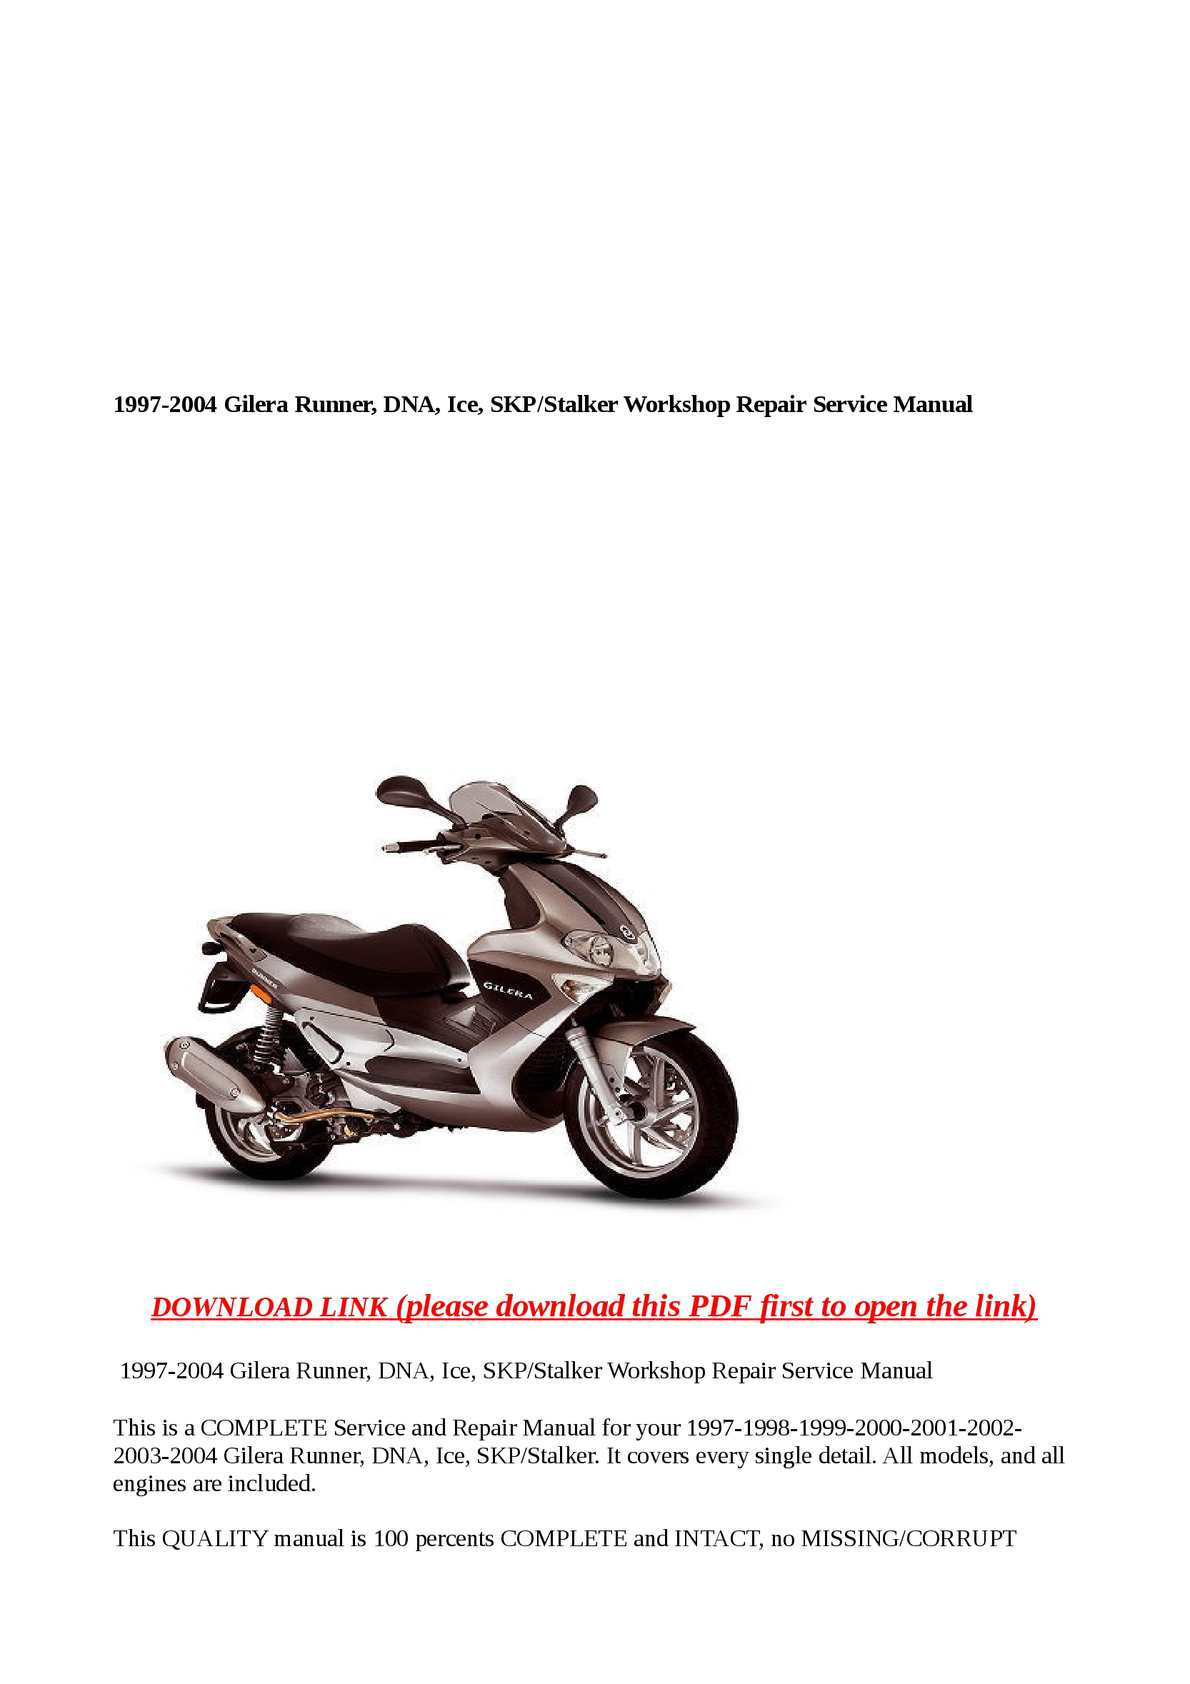 gilera dna owners manual